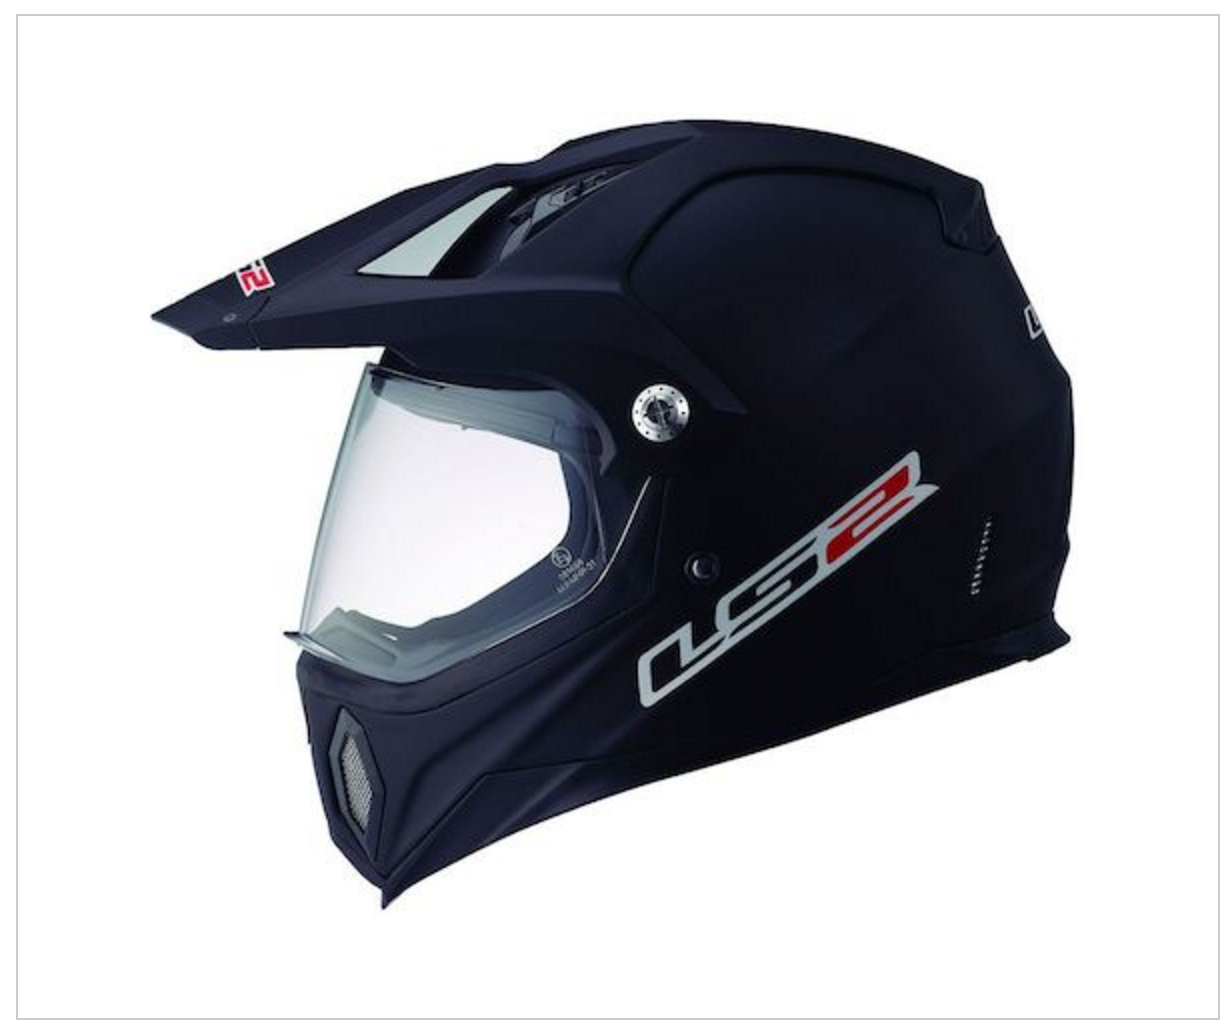 Carbon Fiber Motorcycle Helmets >> LS2 MX453 Solid Off Road Motorcycle Helmet Review: Best Pal for Adventure Riding